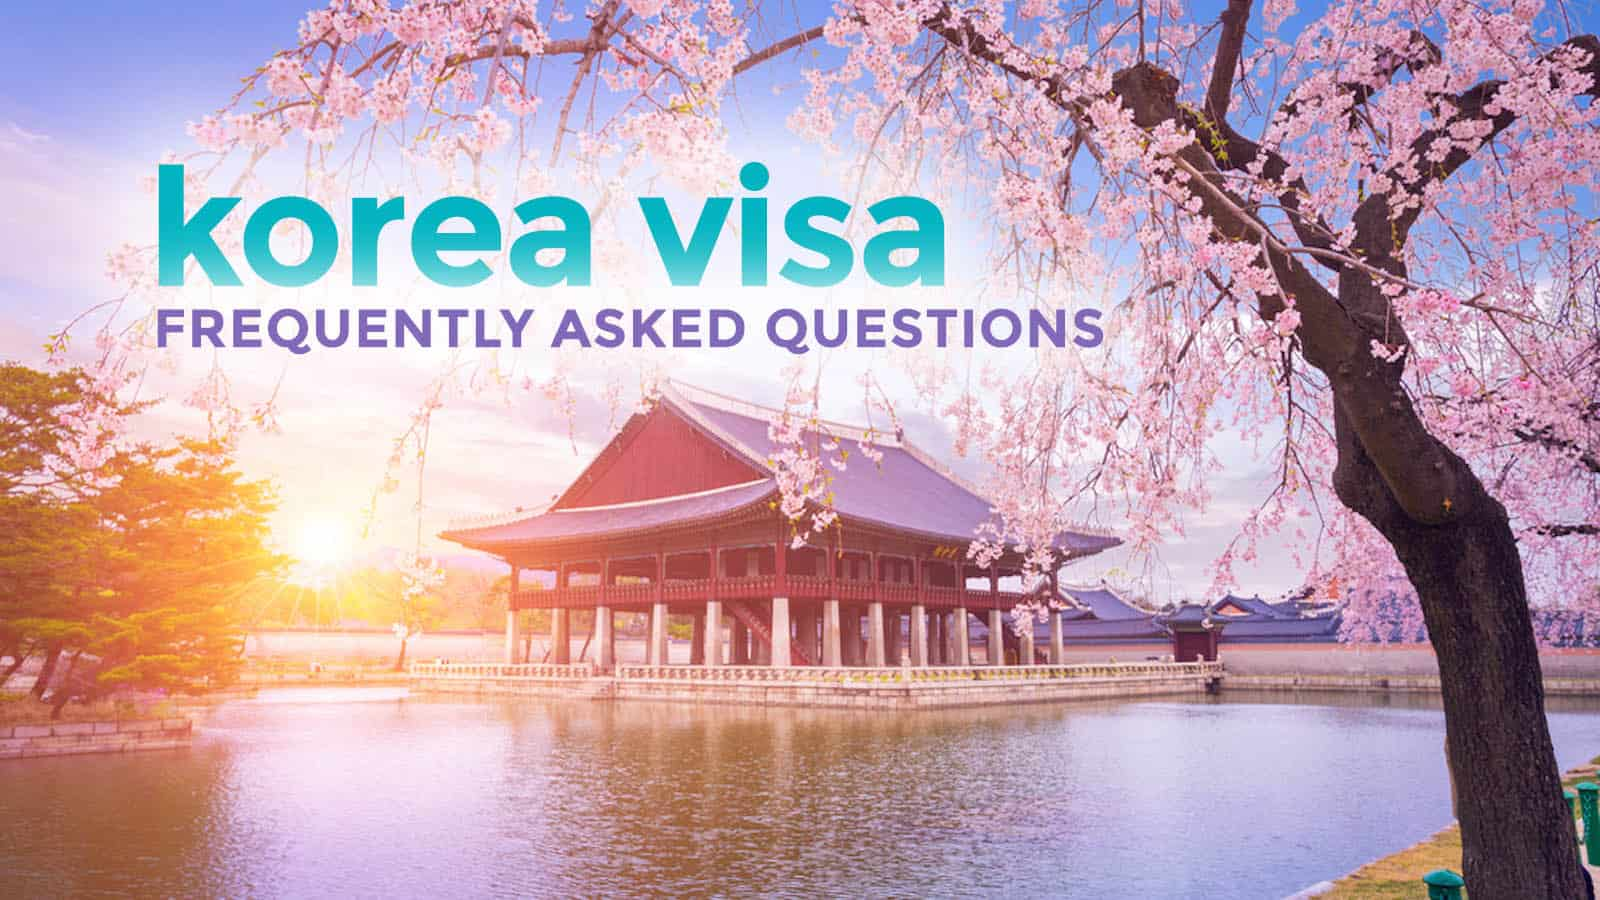 KOREA VISA FOR FILIPINOS: Requirements & Frequently Asked Questions